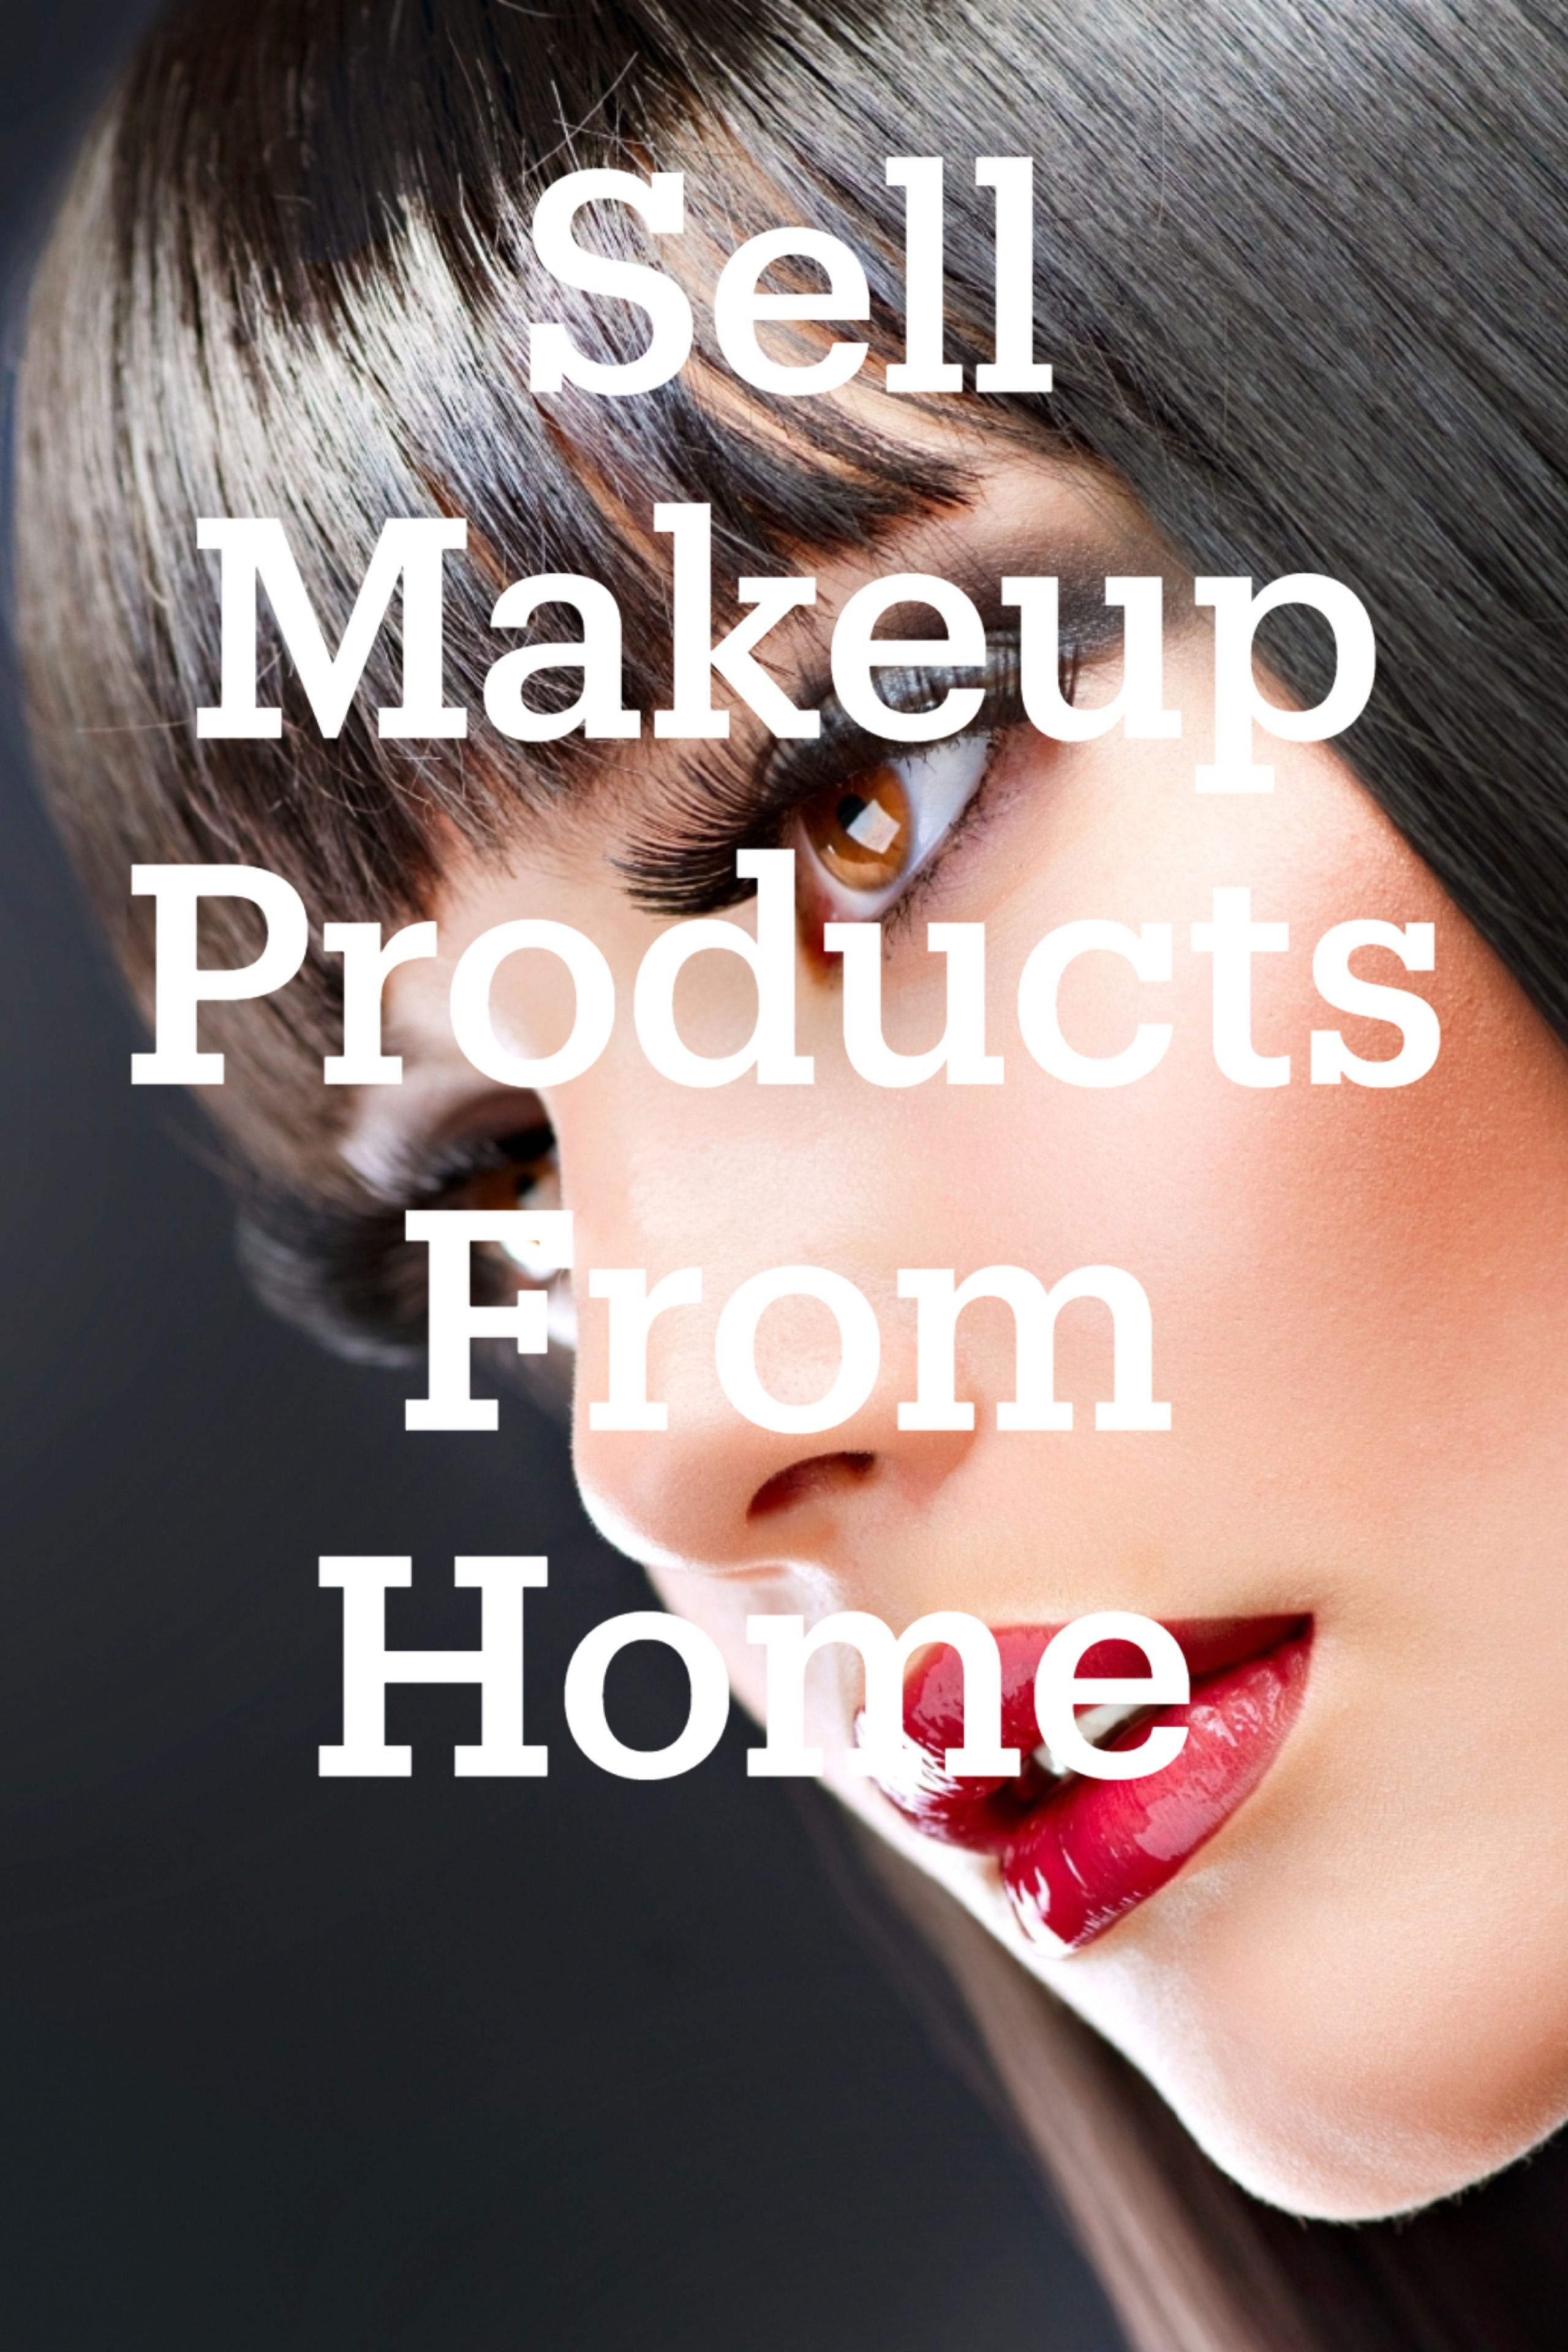 Are You Interested in Selling Makeup Products? an